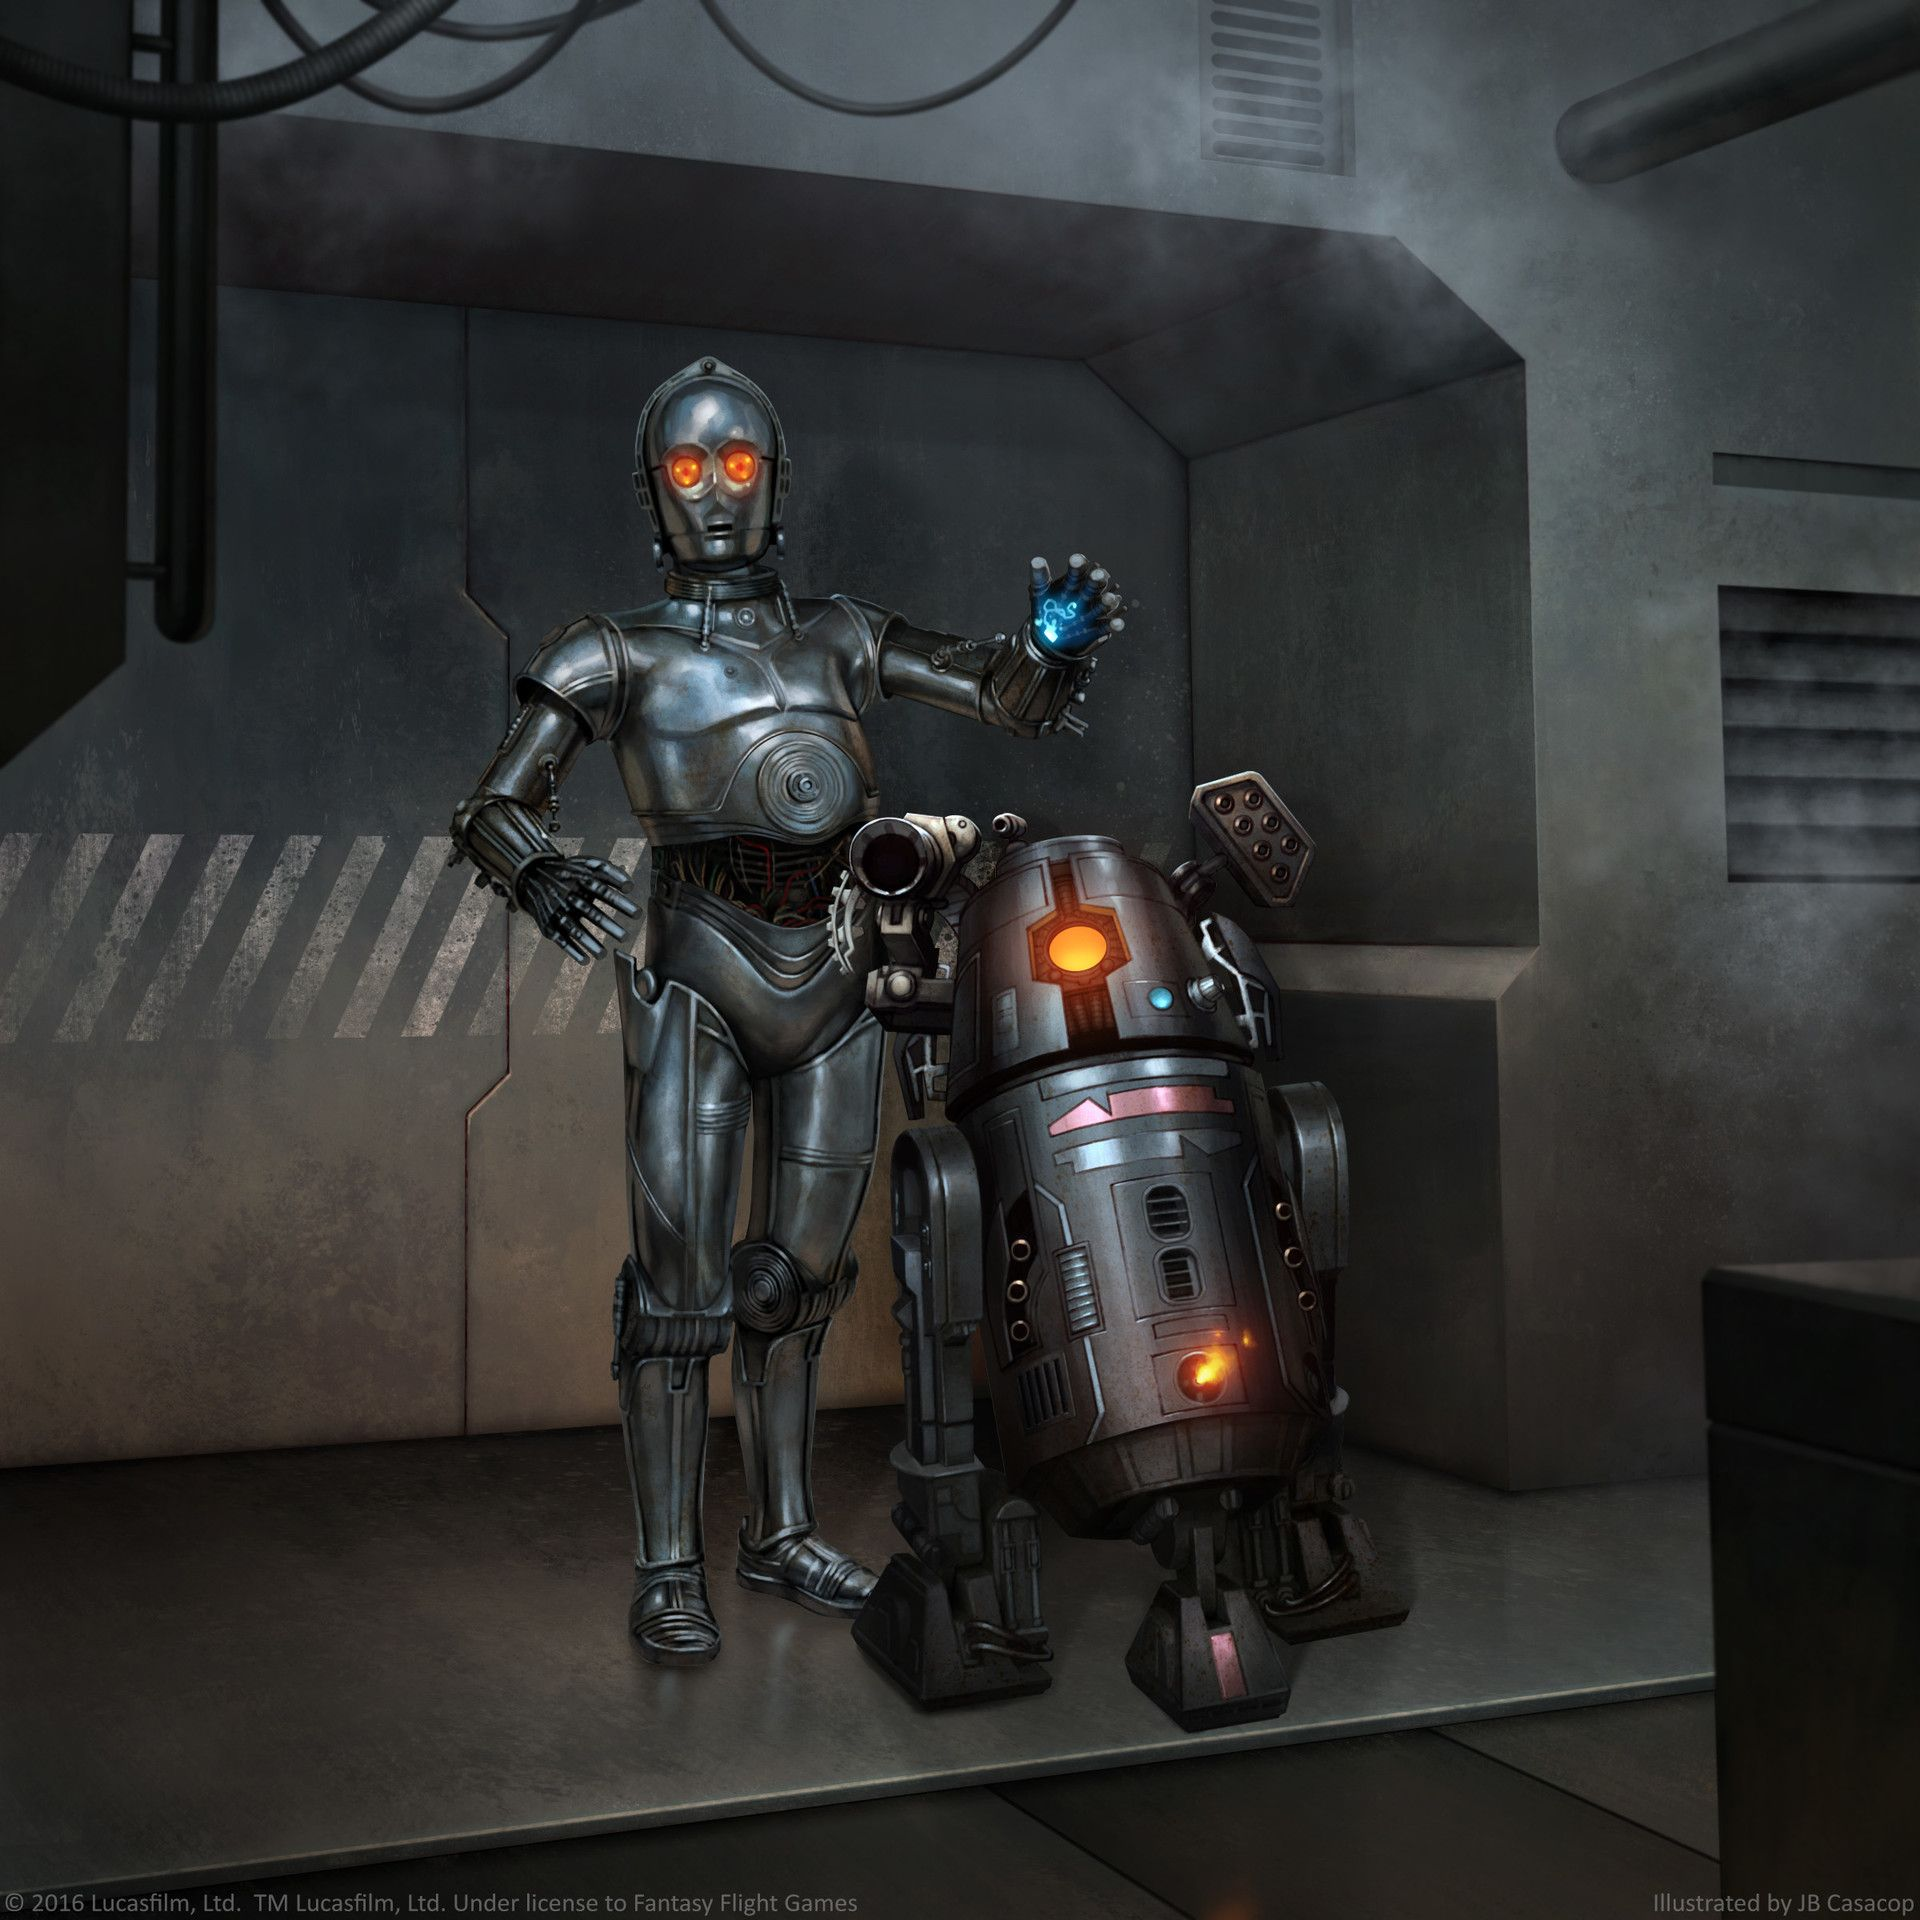 Artstation Bt 1 And 0 0 0 Jb Casacop Star Wars Images Star Wars Rpg Star Wars Droids